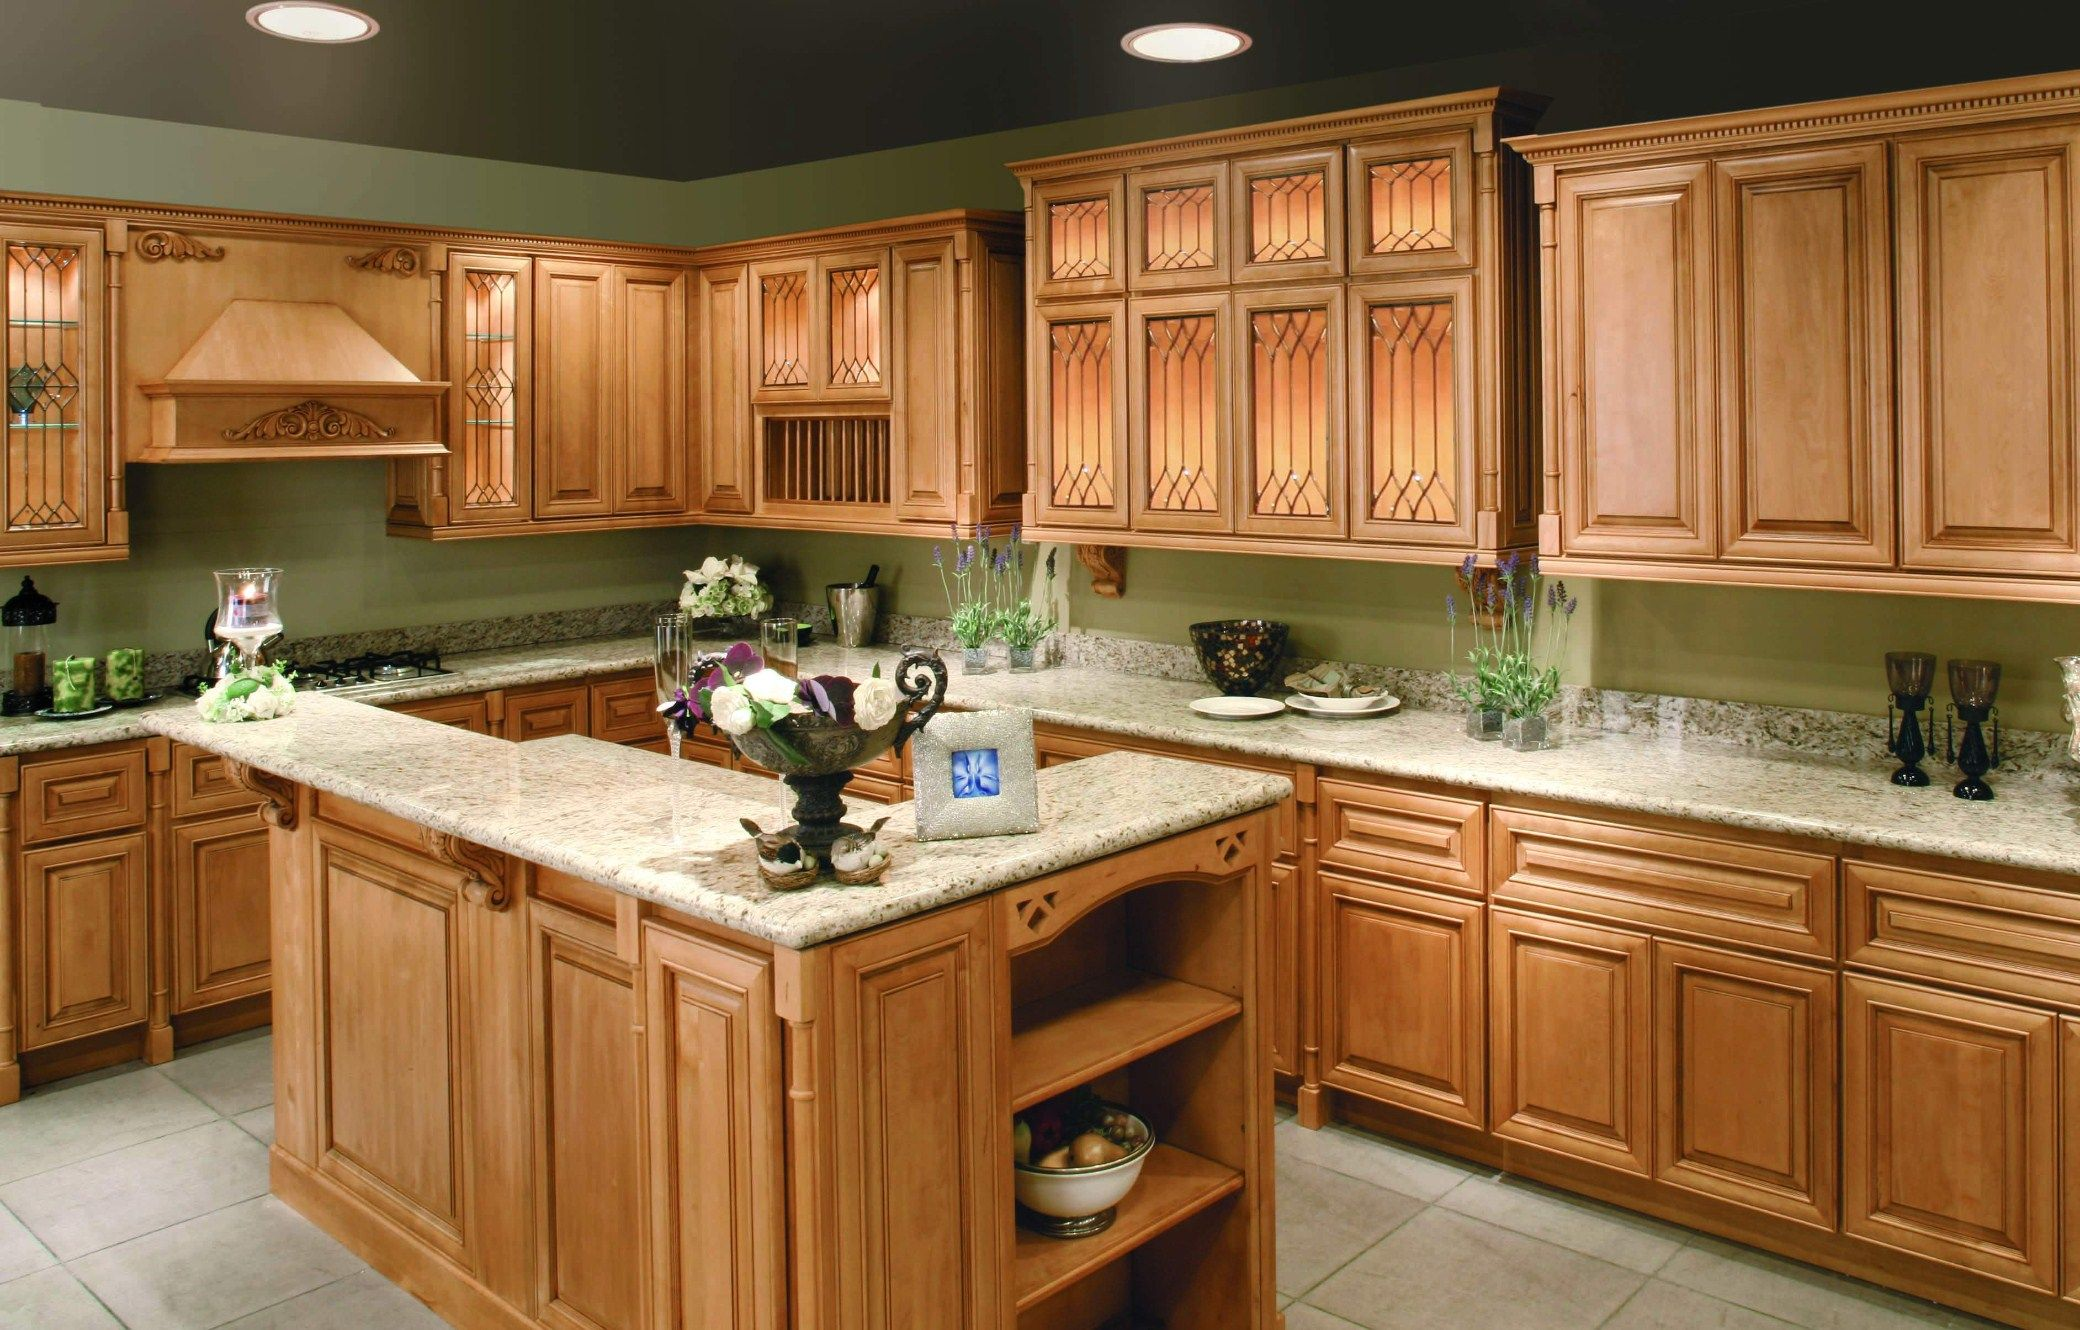 Awesome Kitchens Remodeling quartz countertops prices ... on What Color Granite Goes With Honey Maple Cabinets  id=33483